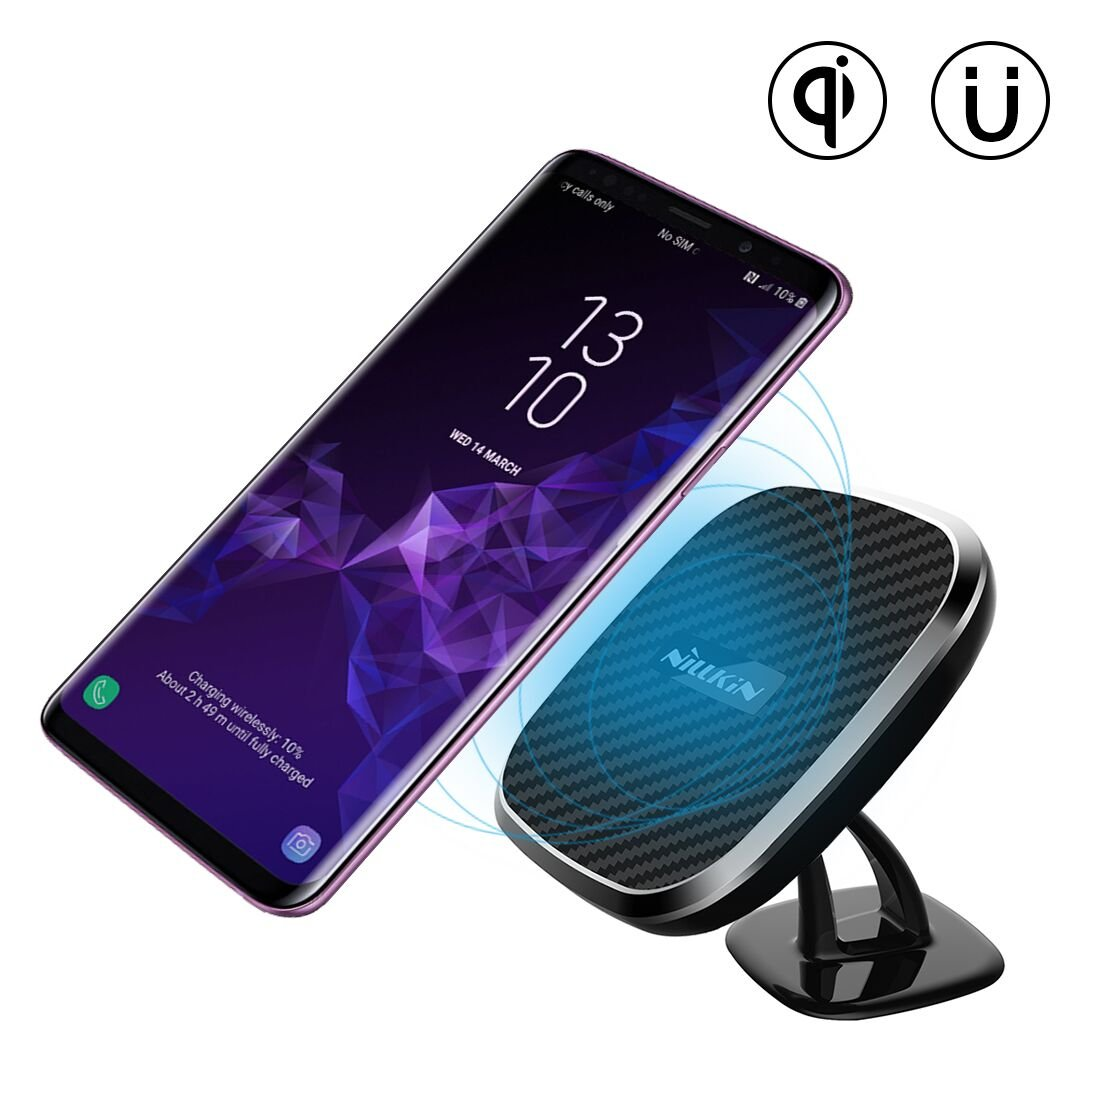 Nillkin 2-in-1 Qi Wireless Charging Pad & Magnetic Car Mount Holder for Samsung Note 9/8/S9/S8/S8 Plus, 7.5W Fast Charging for iPhone Xs Max/XS/XR/X/8/8 Plus - Model C